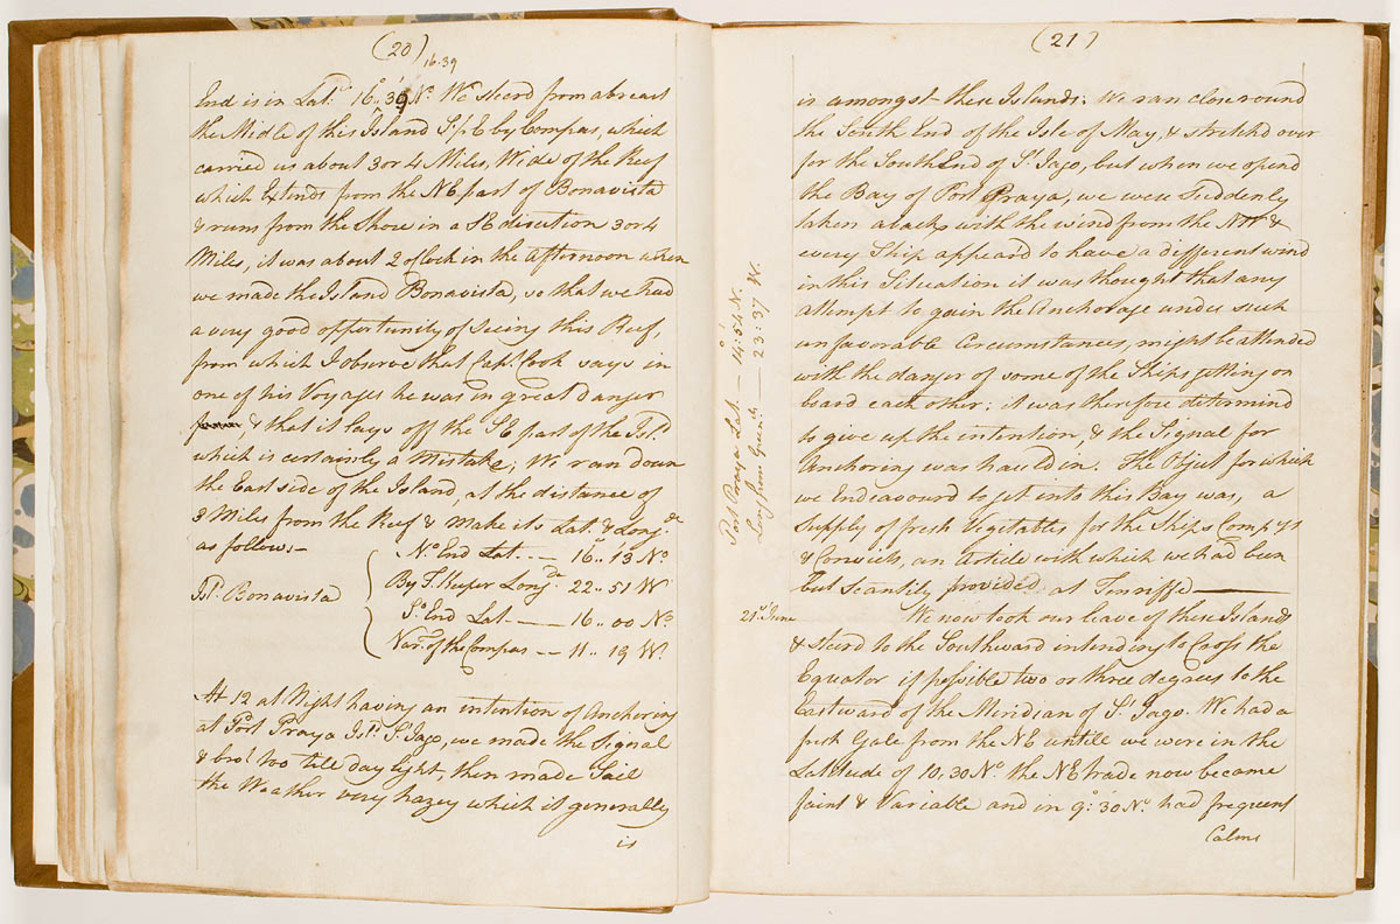 John Hunter - journal kept on board the Sirius during a voyage to New South Wales, May 1787 - March 1791. Journal entry.